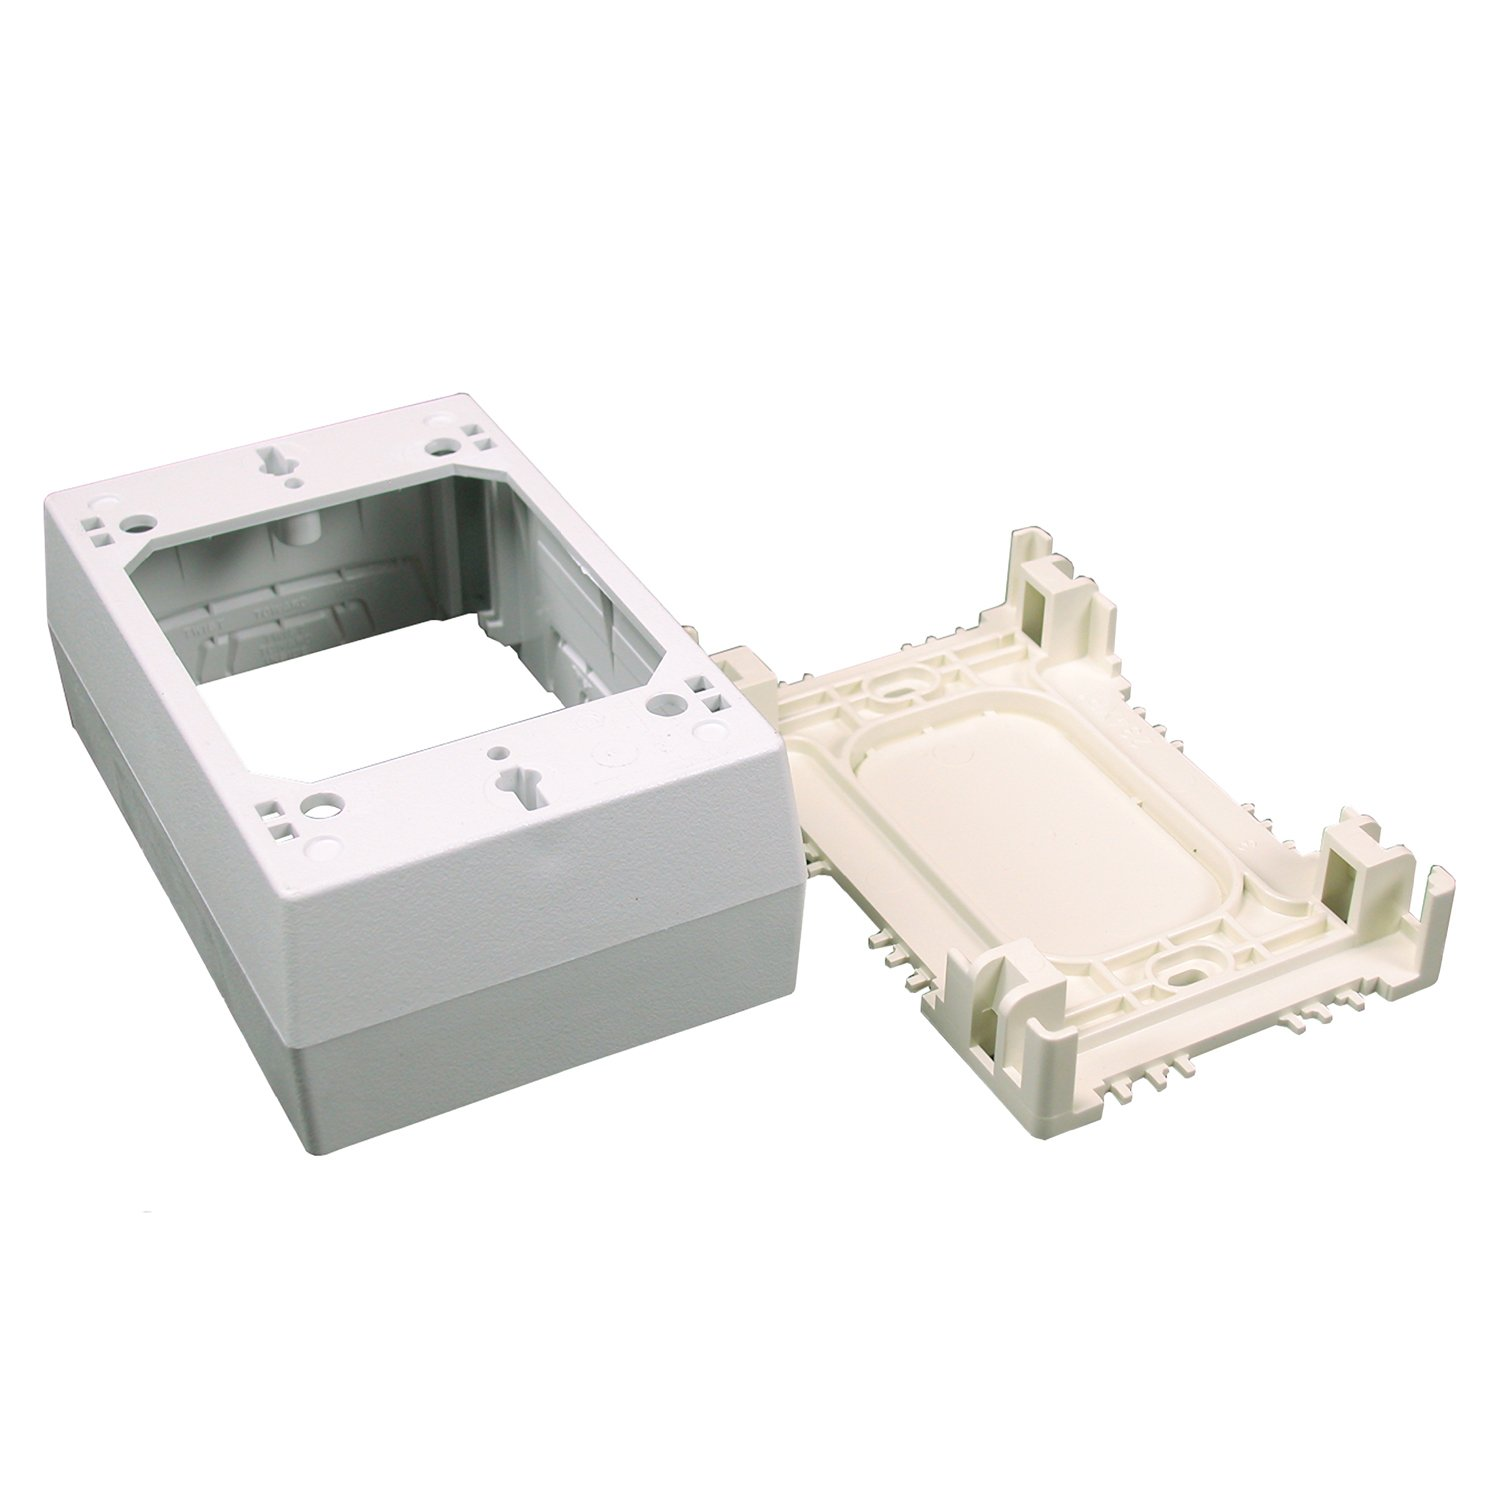 Legrand - Wiremold NM2 Switch/Outlet Box - Electrical Boxes - Amazon.com